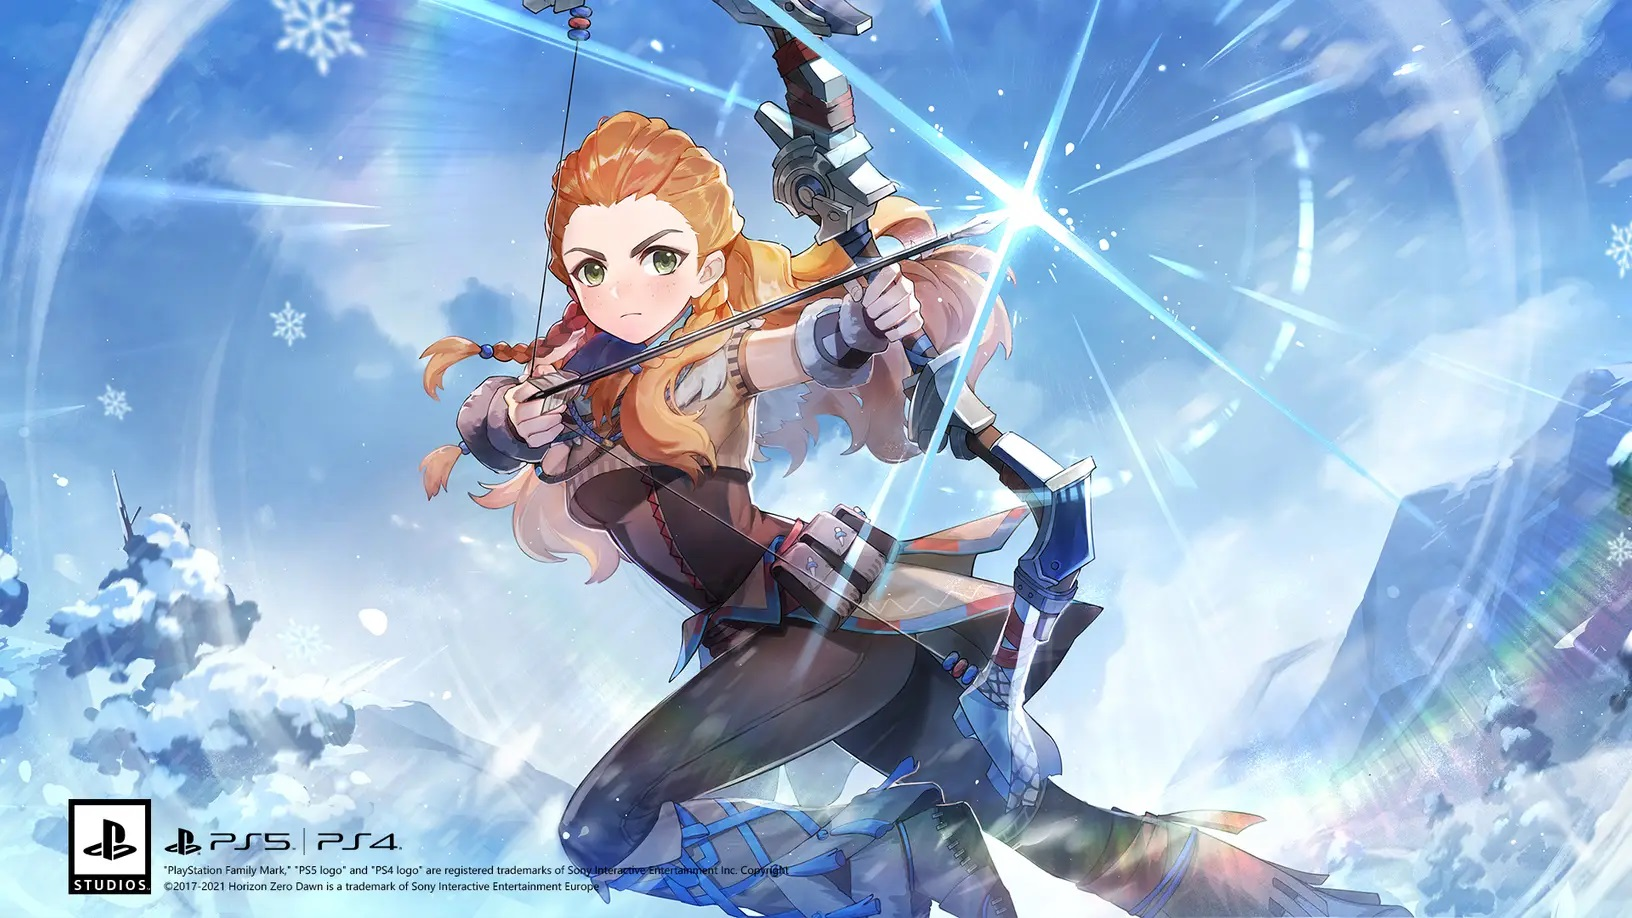 Genshin Impact: Update 2.1 presented - with Aloy from Horizon